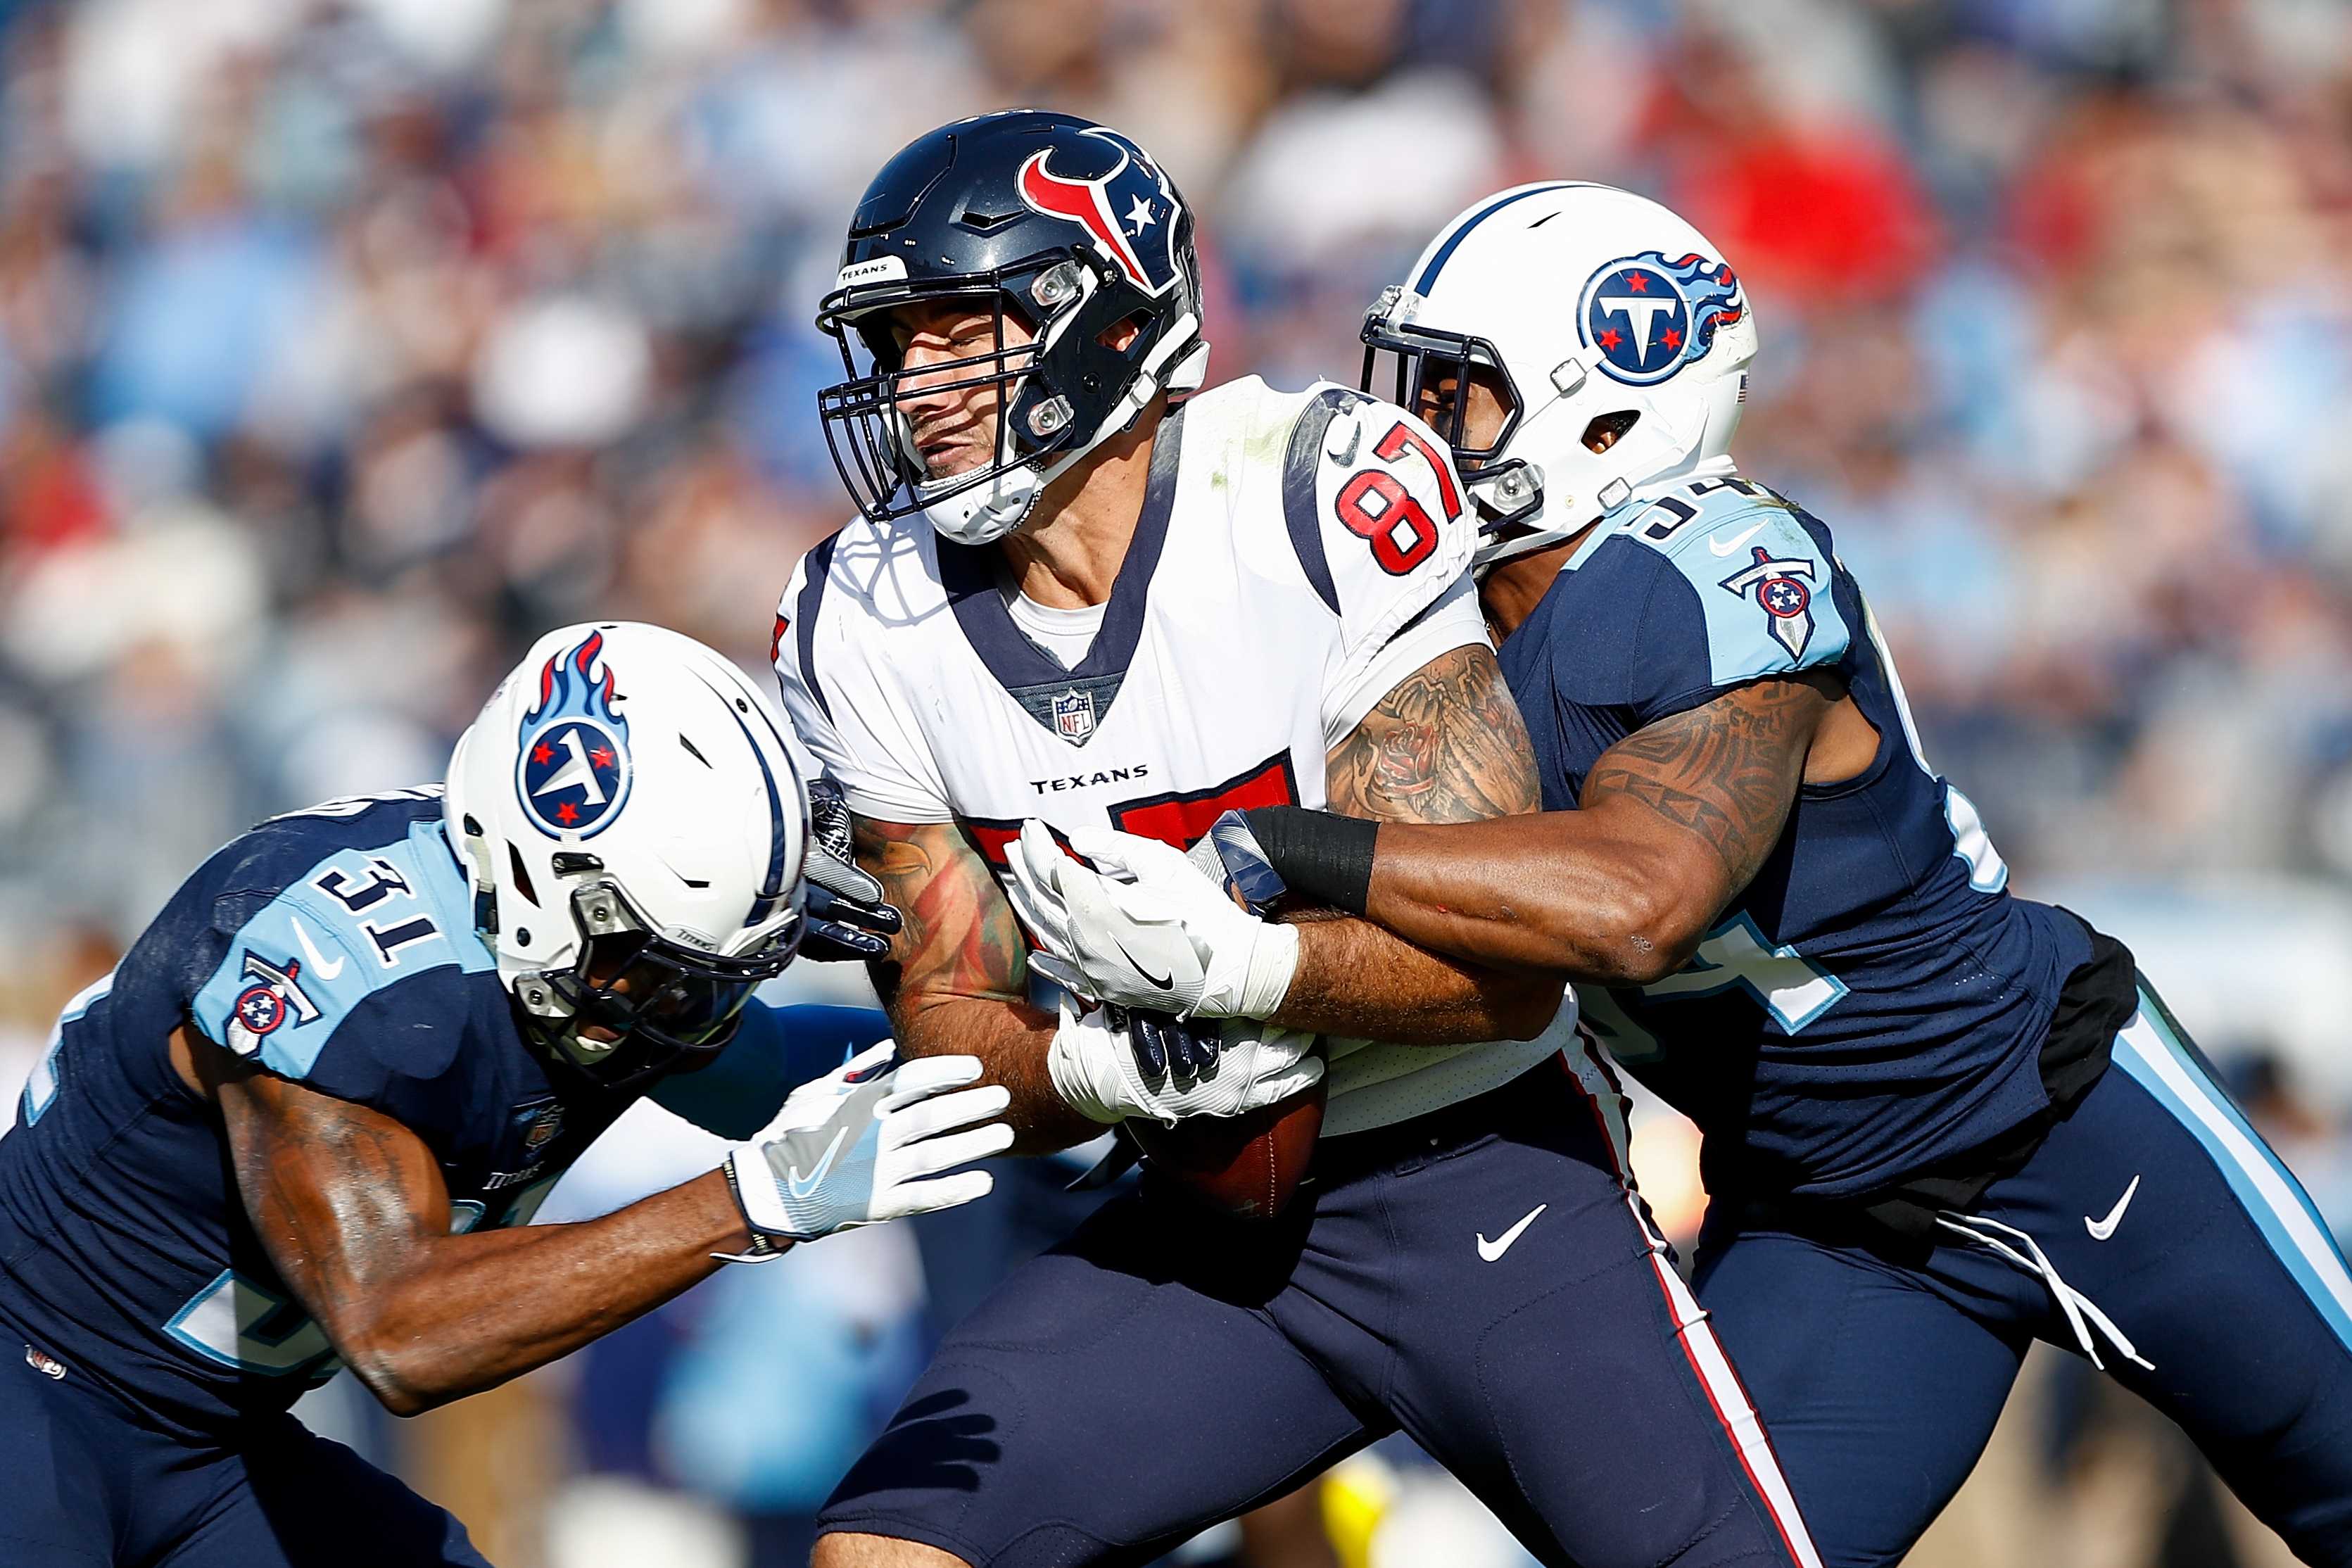 Texans Place Fiedorowicz On Reserve/Retired List